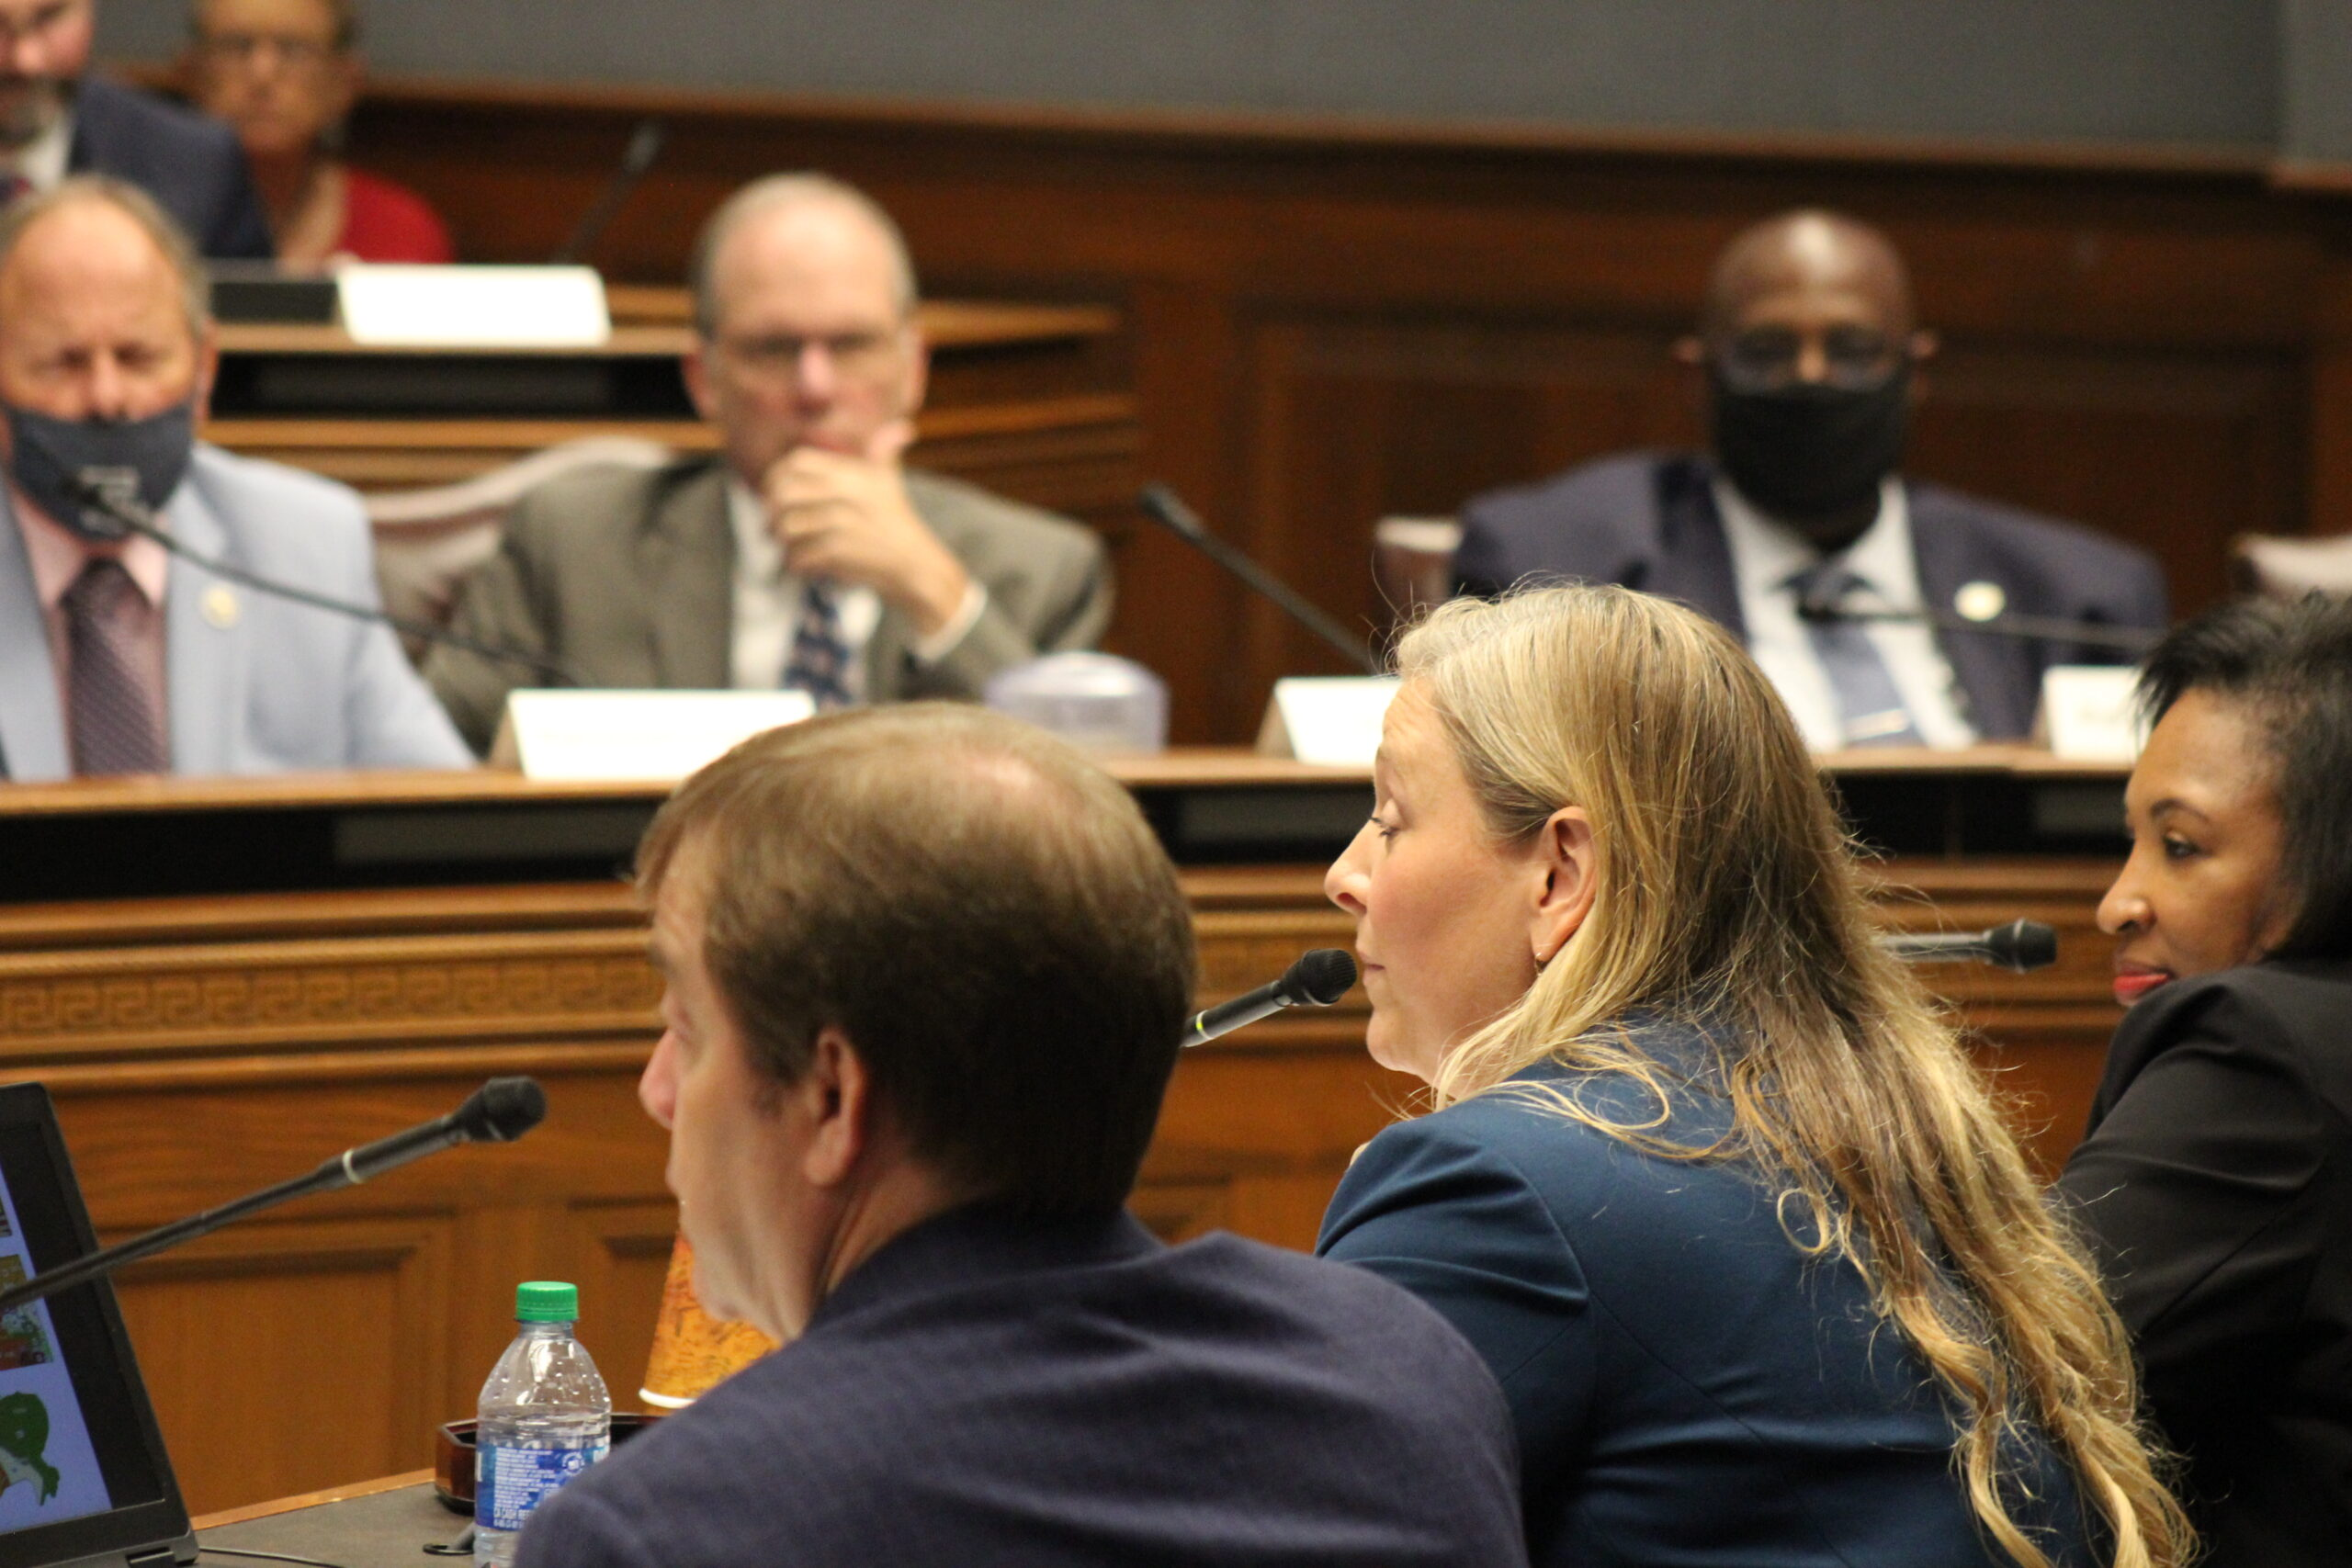 Louisiana political districts will have to undergo drastic changes, legislative staff says